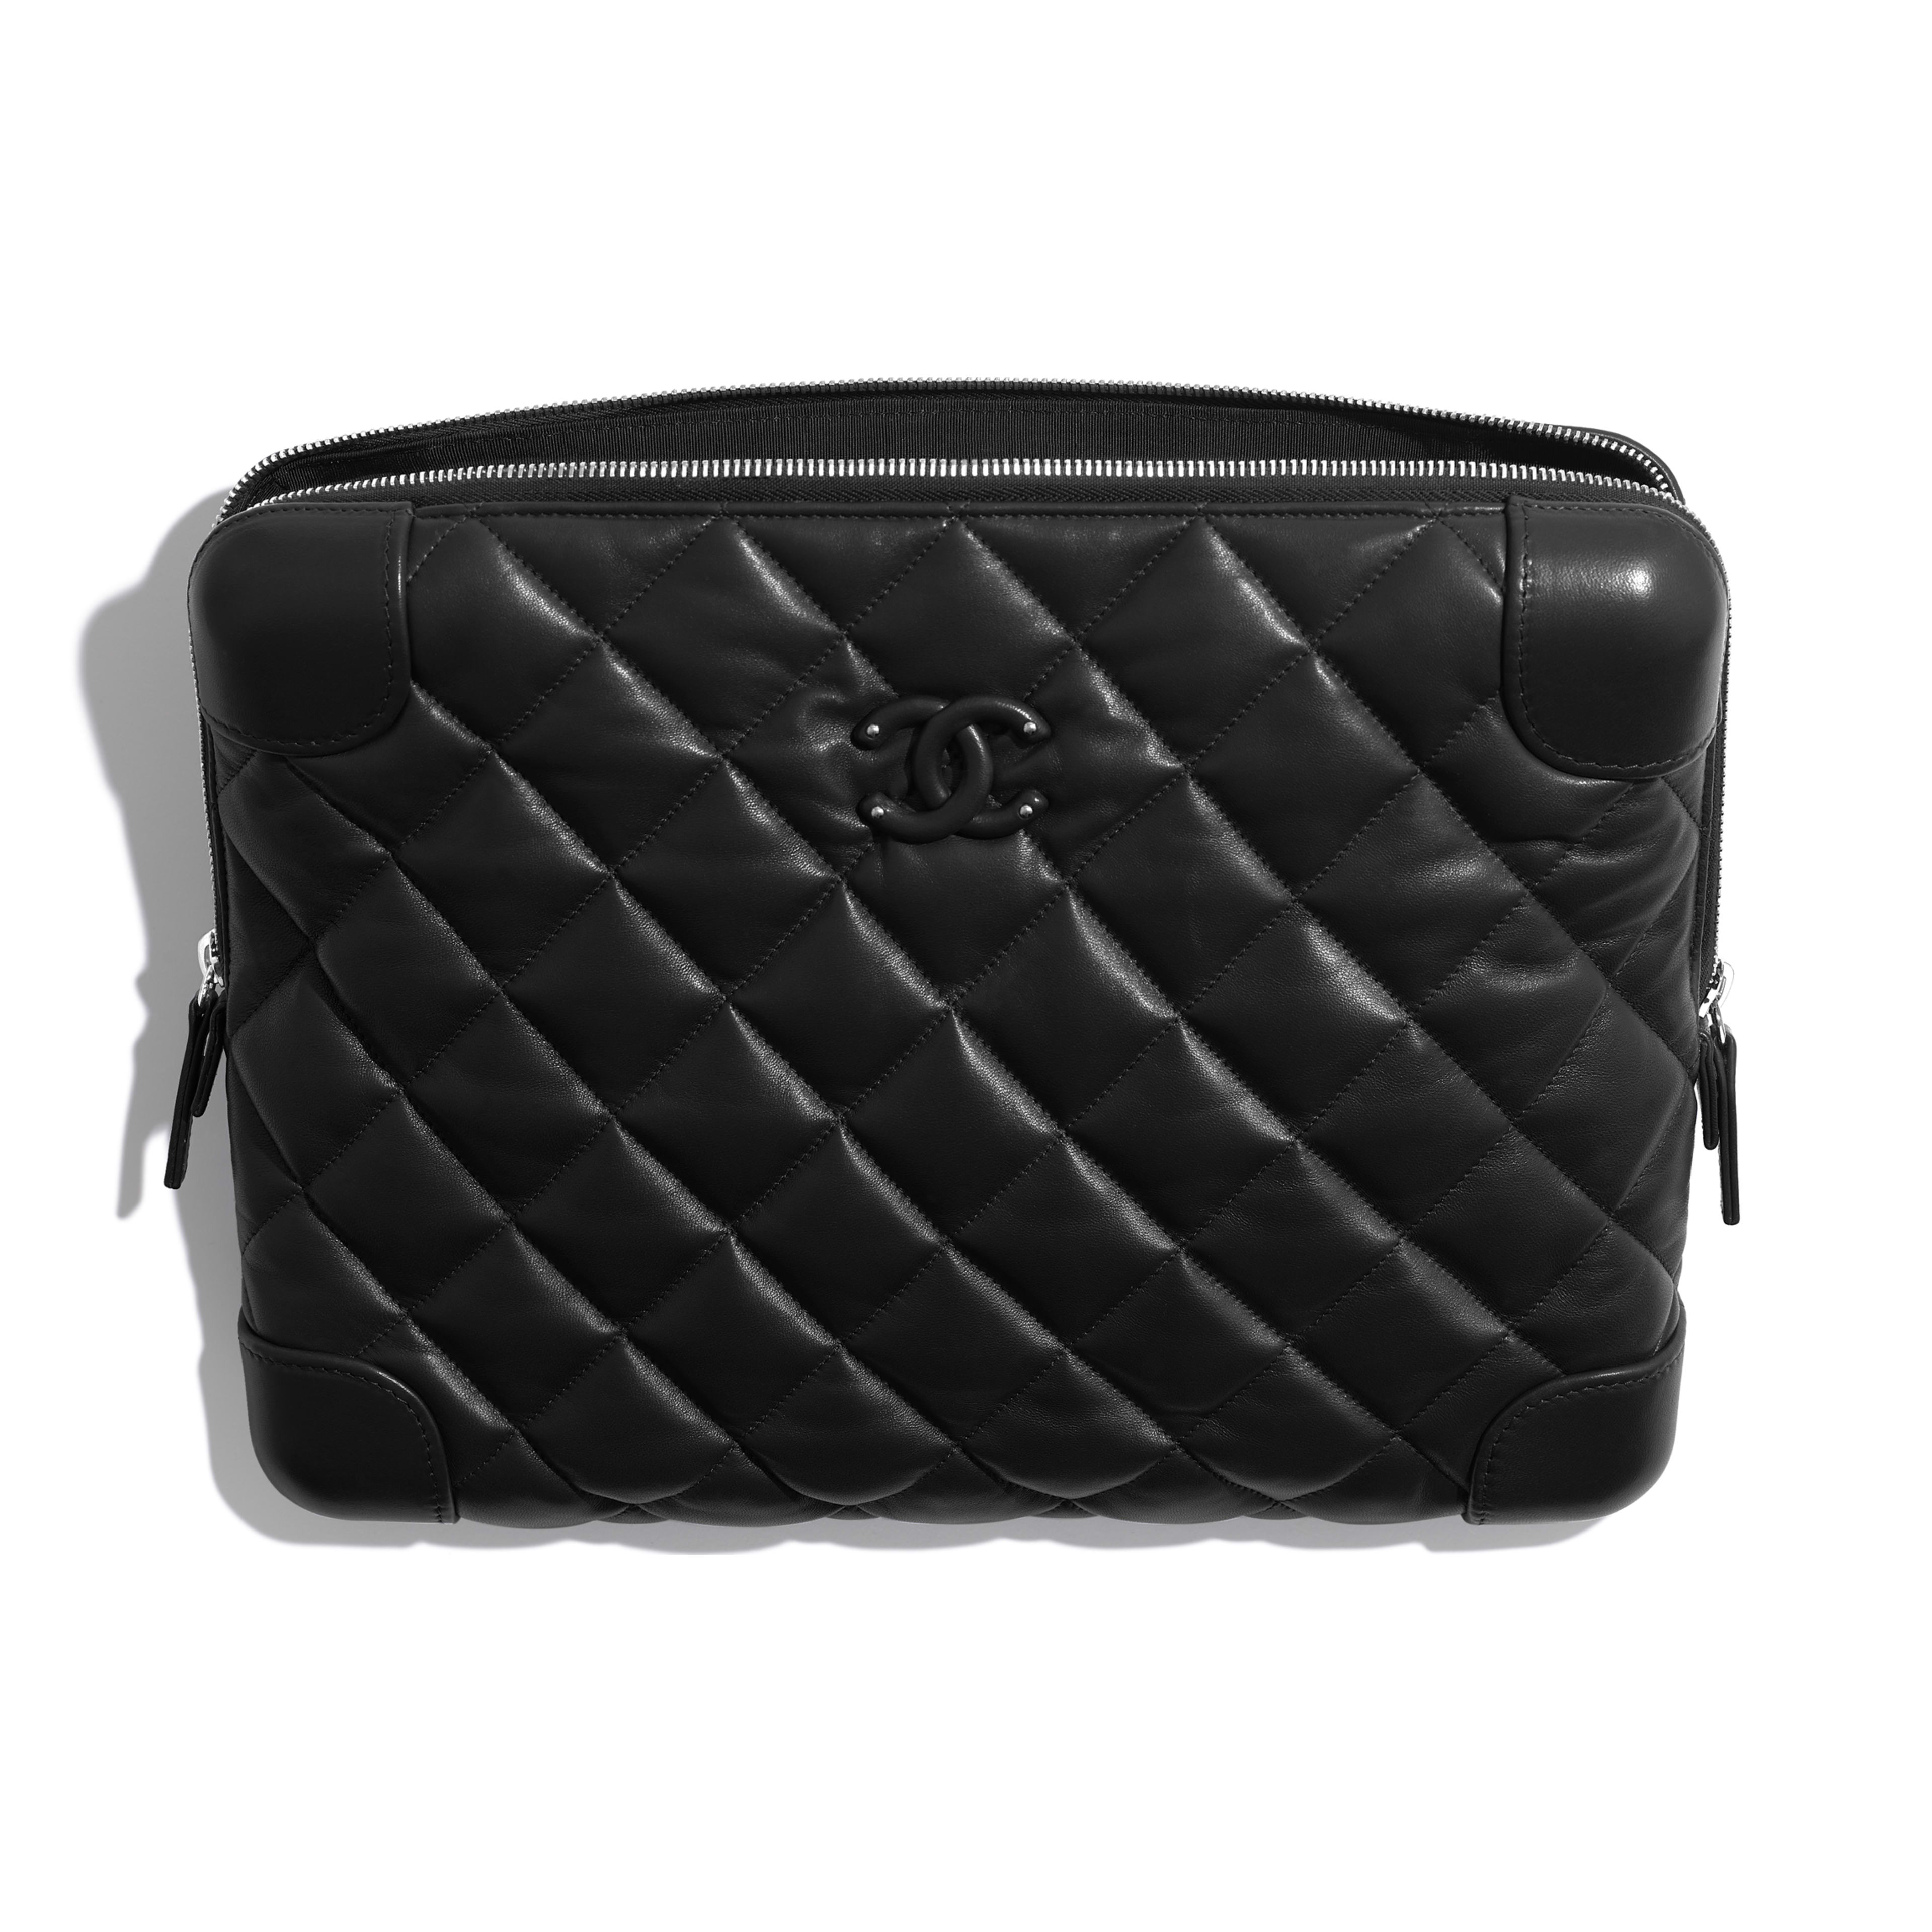 Large Clutch - Black - Lambskin - Other view - see full sized version